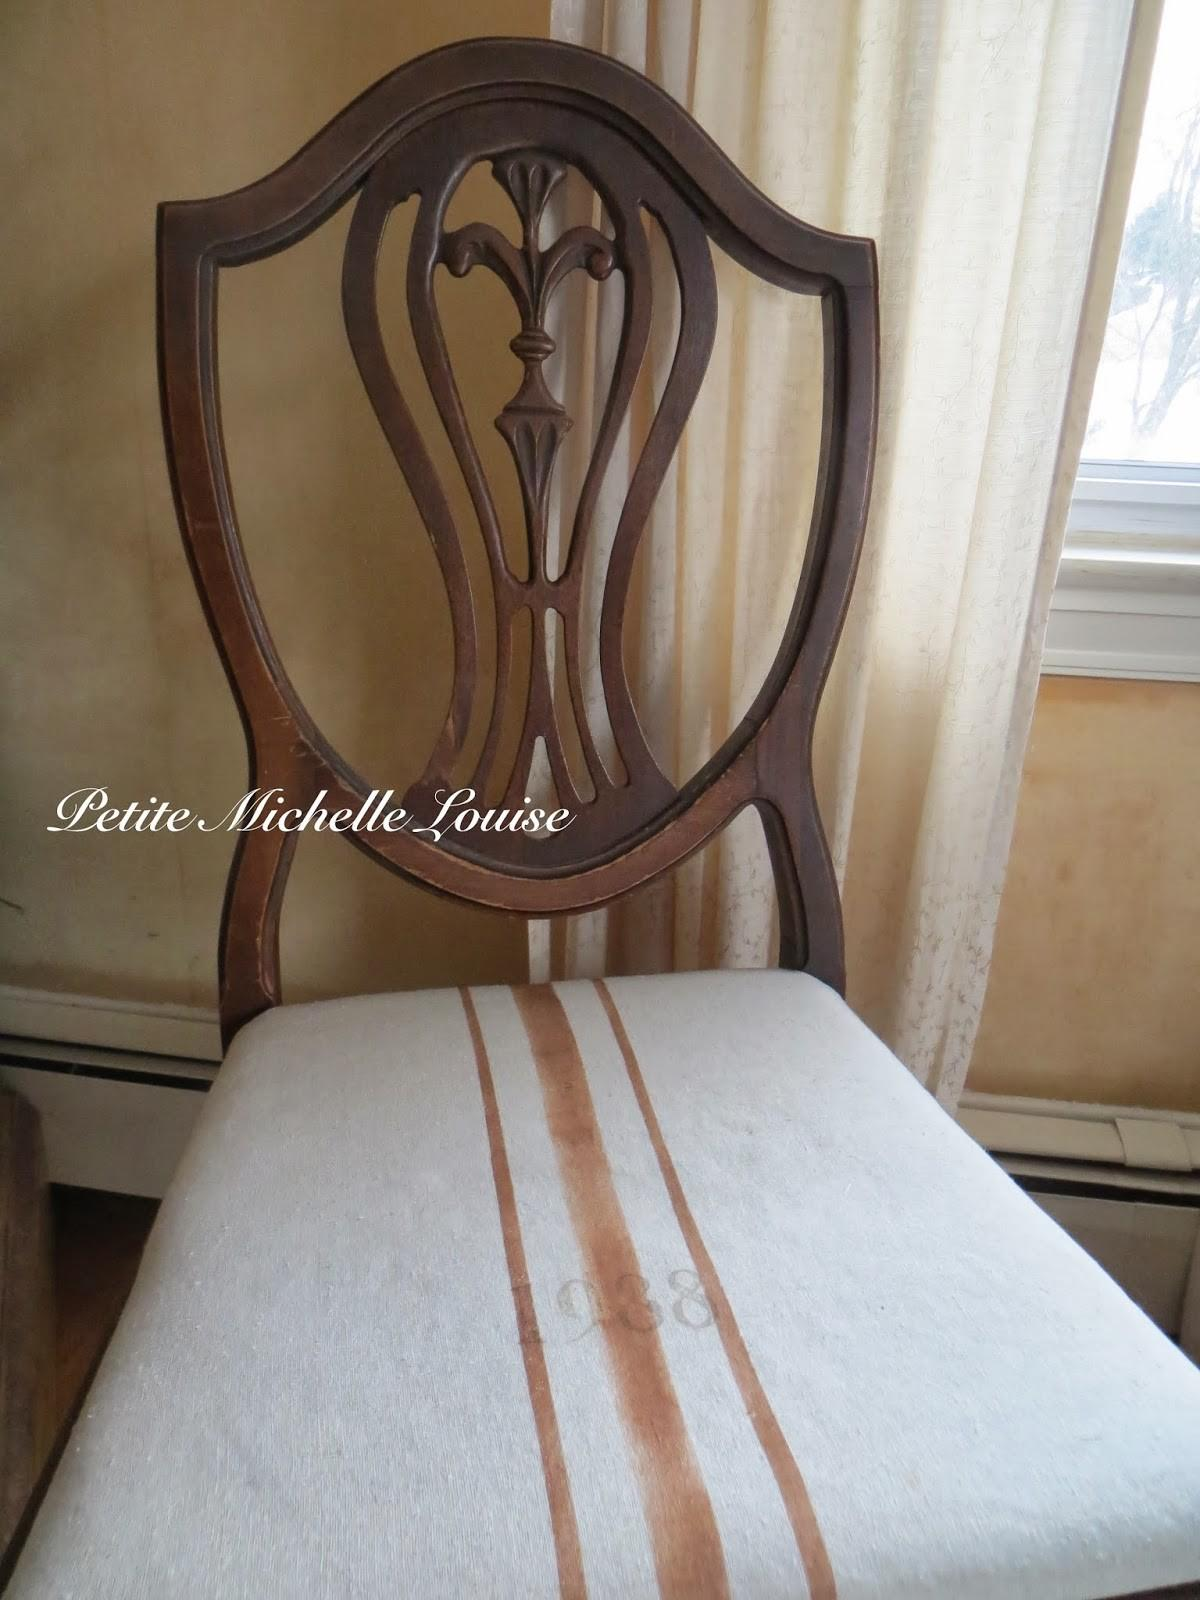 Petite Michelle Louise Chair Makeover Diy Tutorial